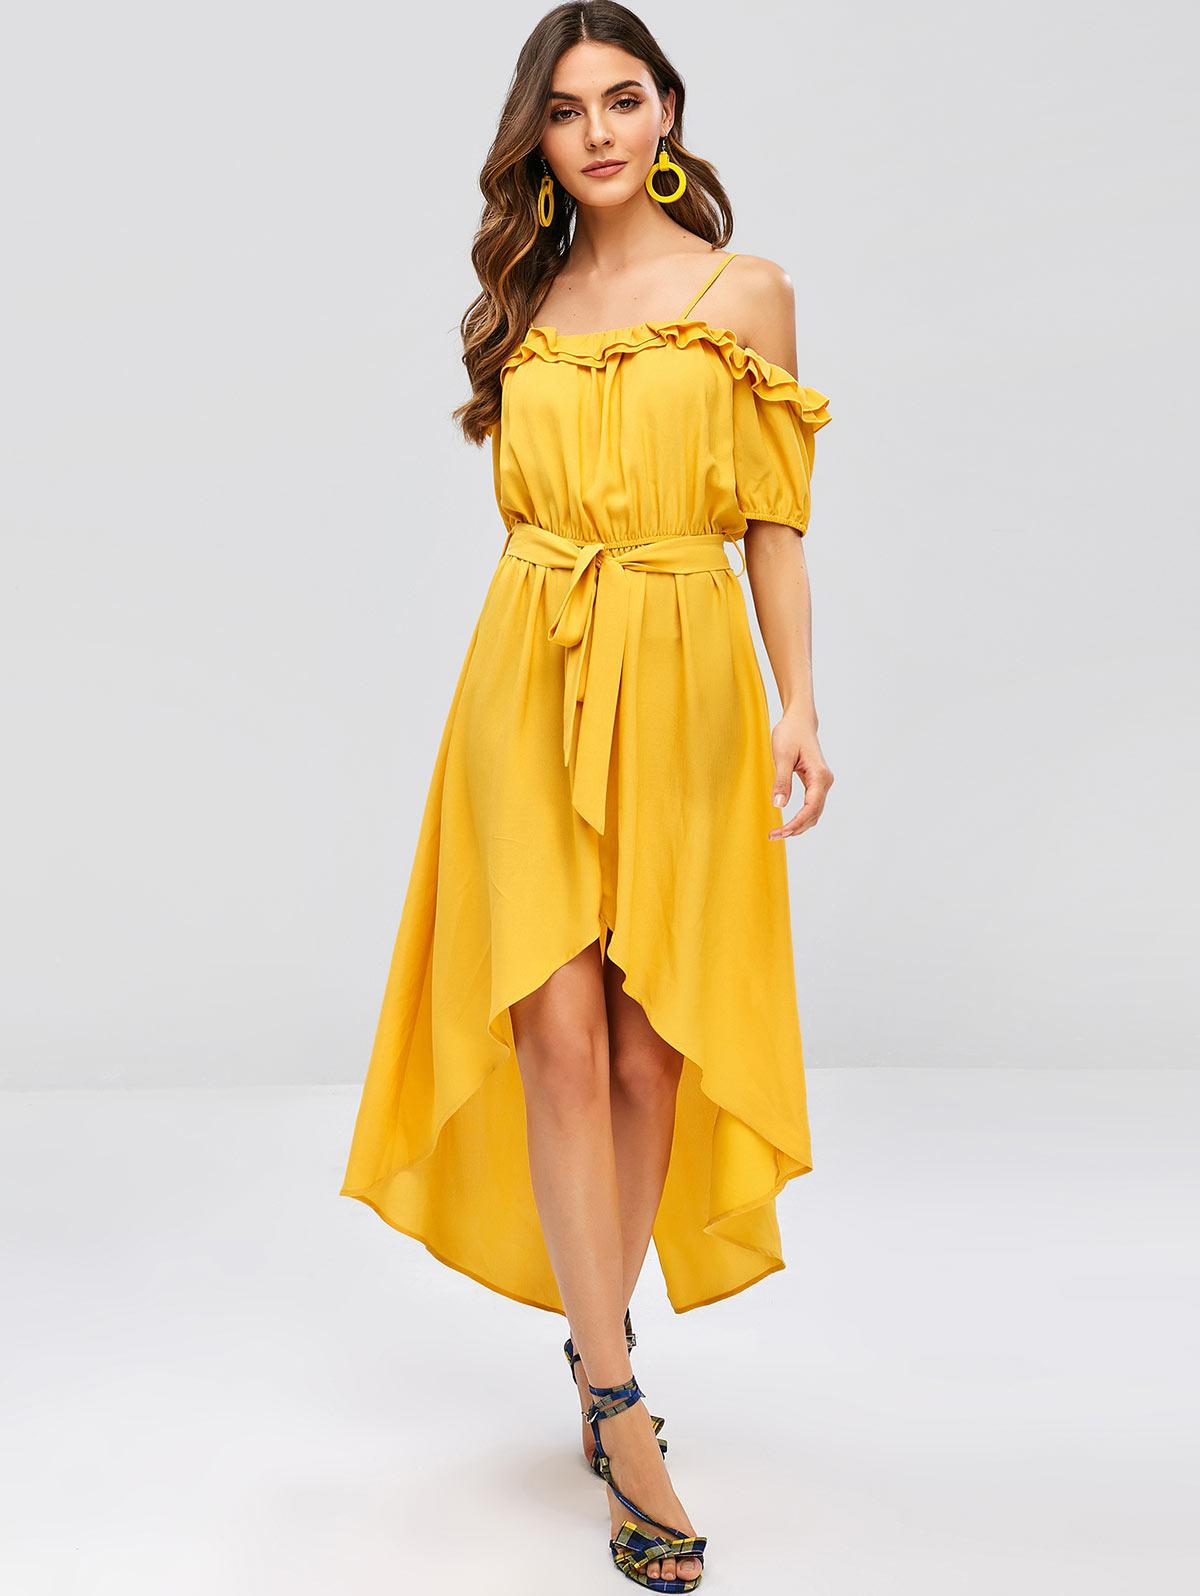 ZAFUL Ruffles Belted Asymmetric Cami Dress, Bee yellow